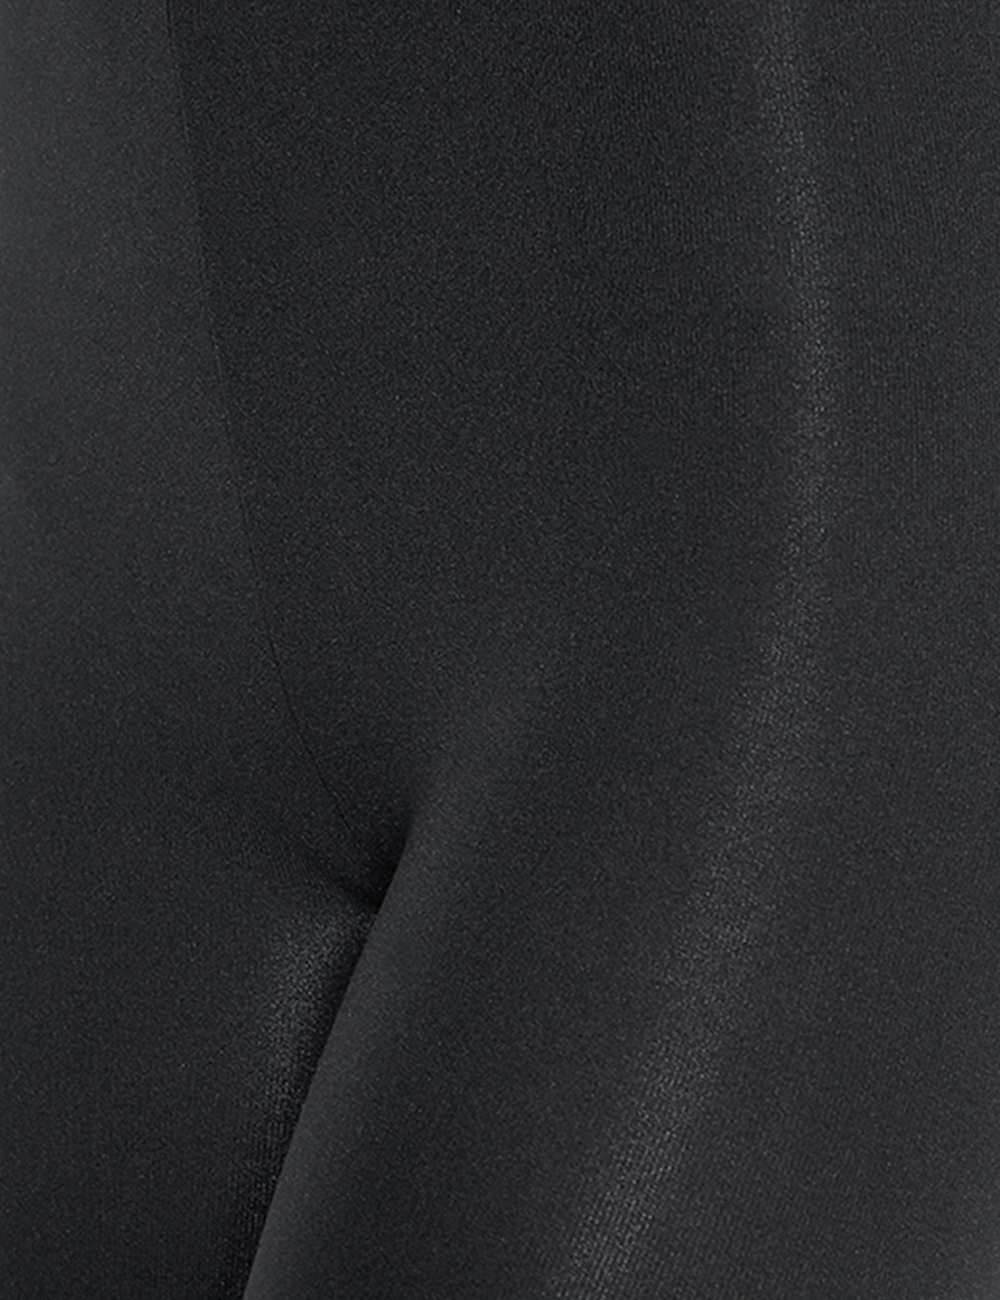 Velvet Sensation Leggings